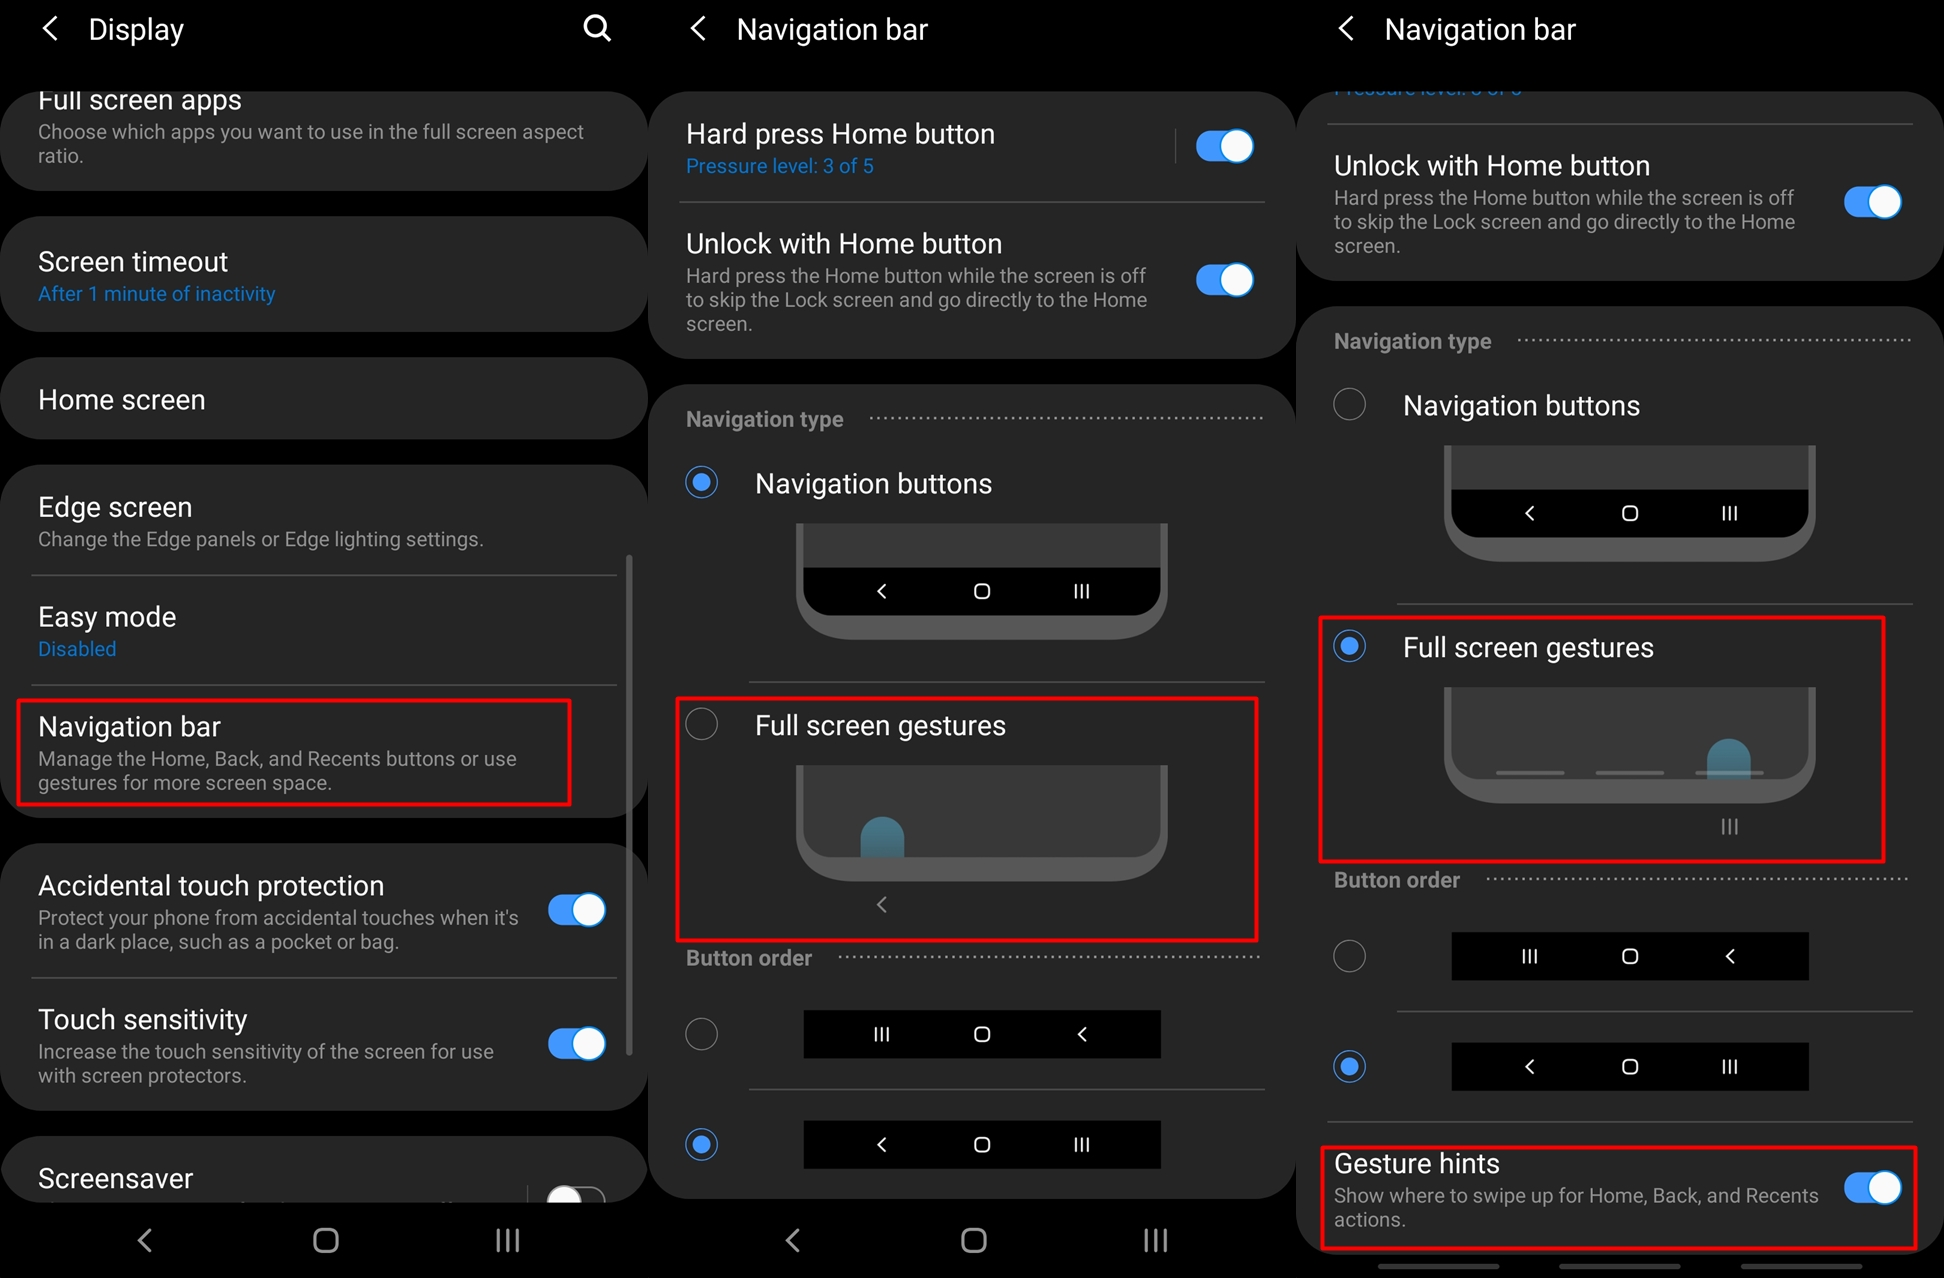 How To Hide Navigation Bar On One UI Android 9 Pie Update